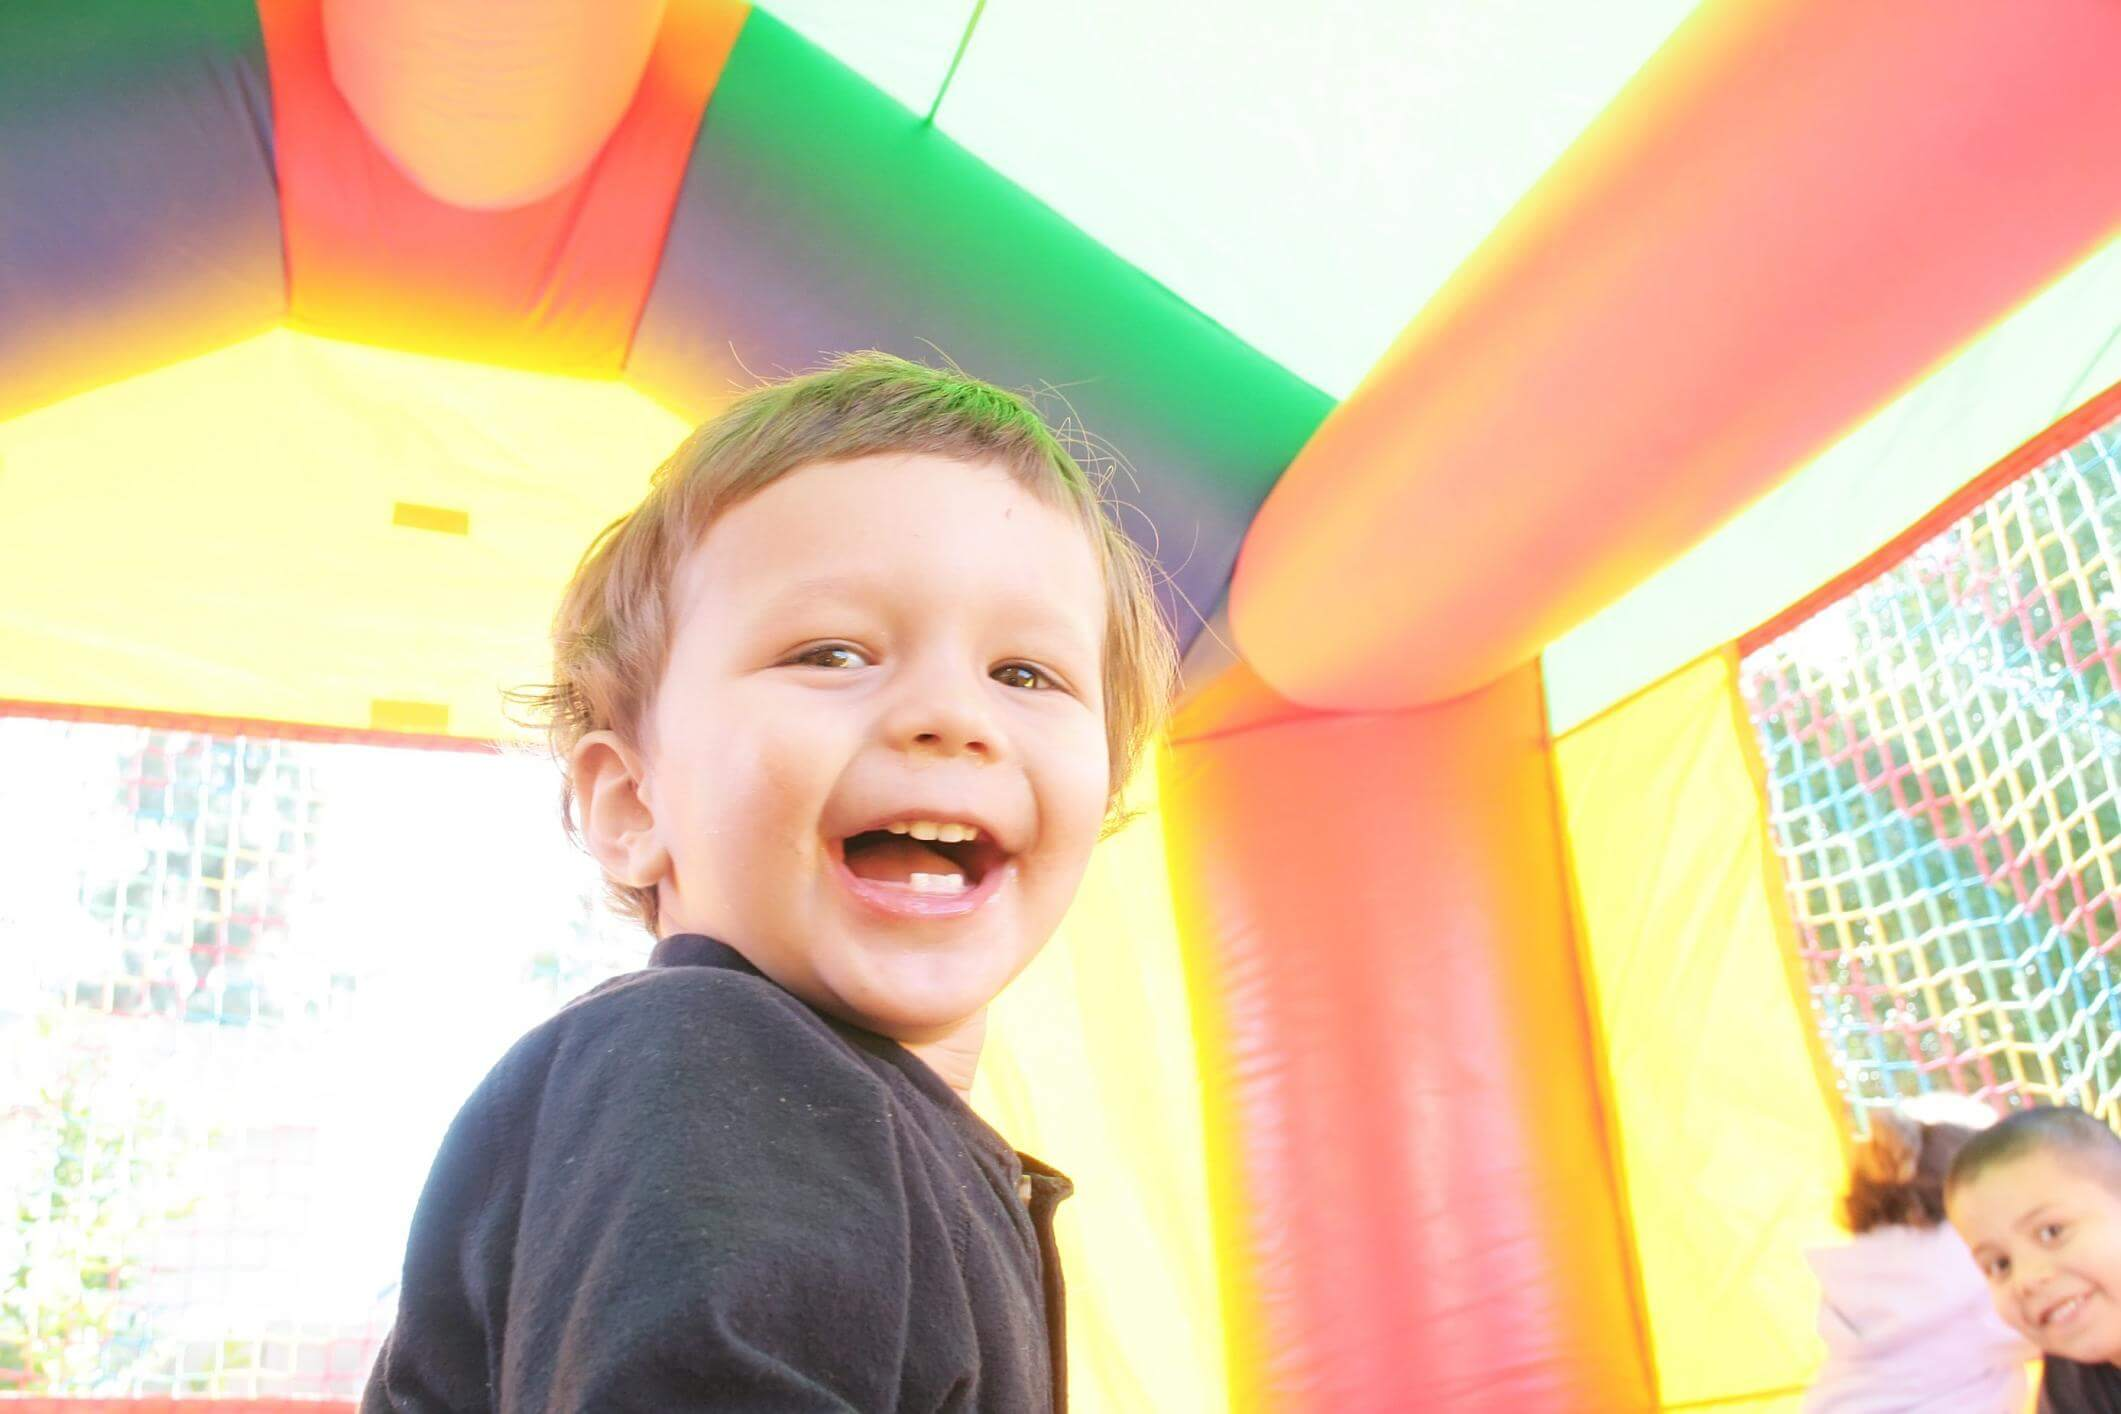 Two happy children in a red, yellow and green bouncy castle